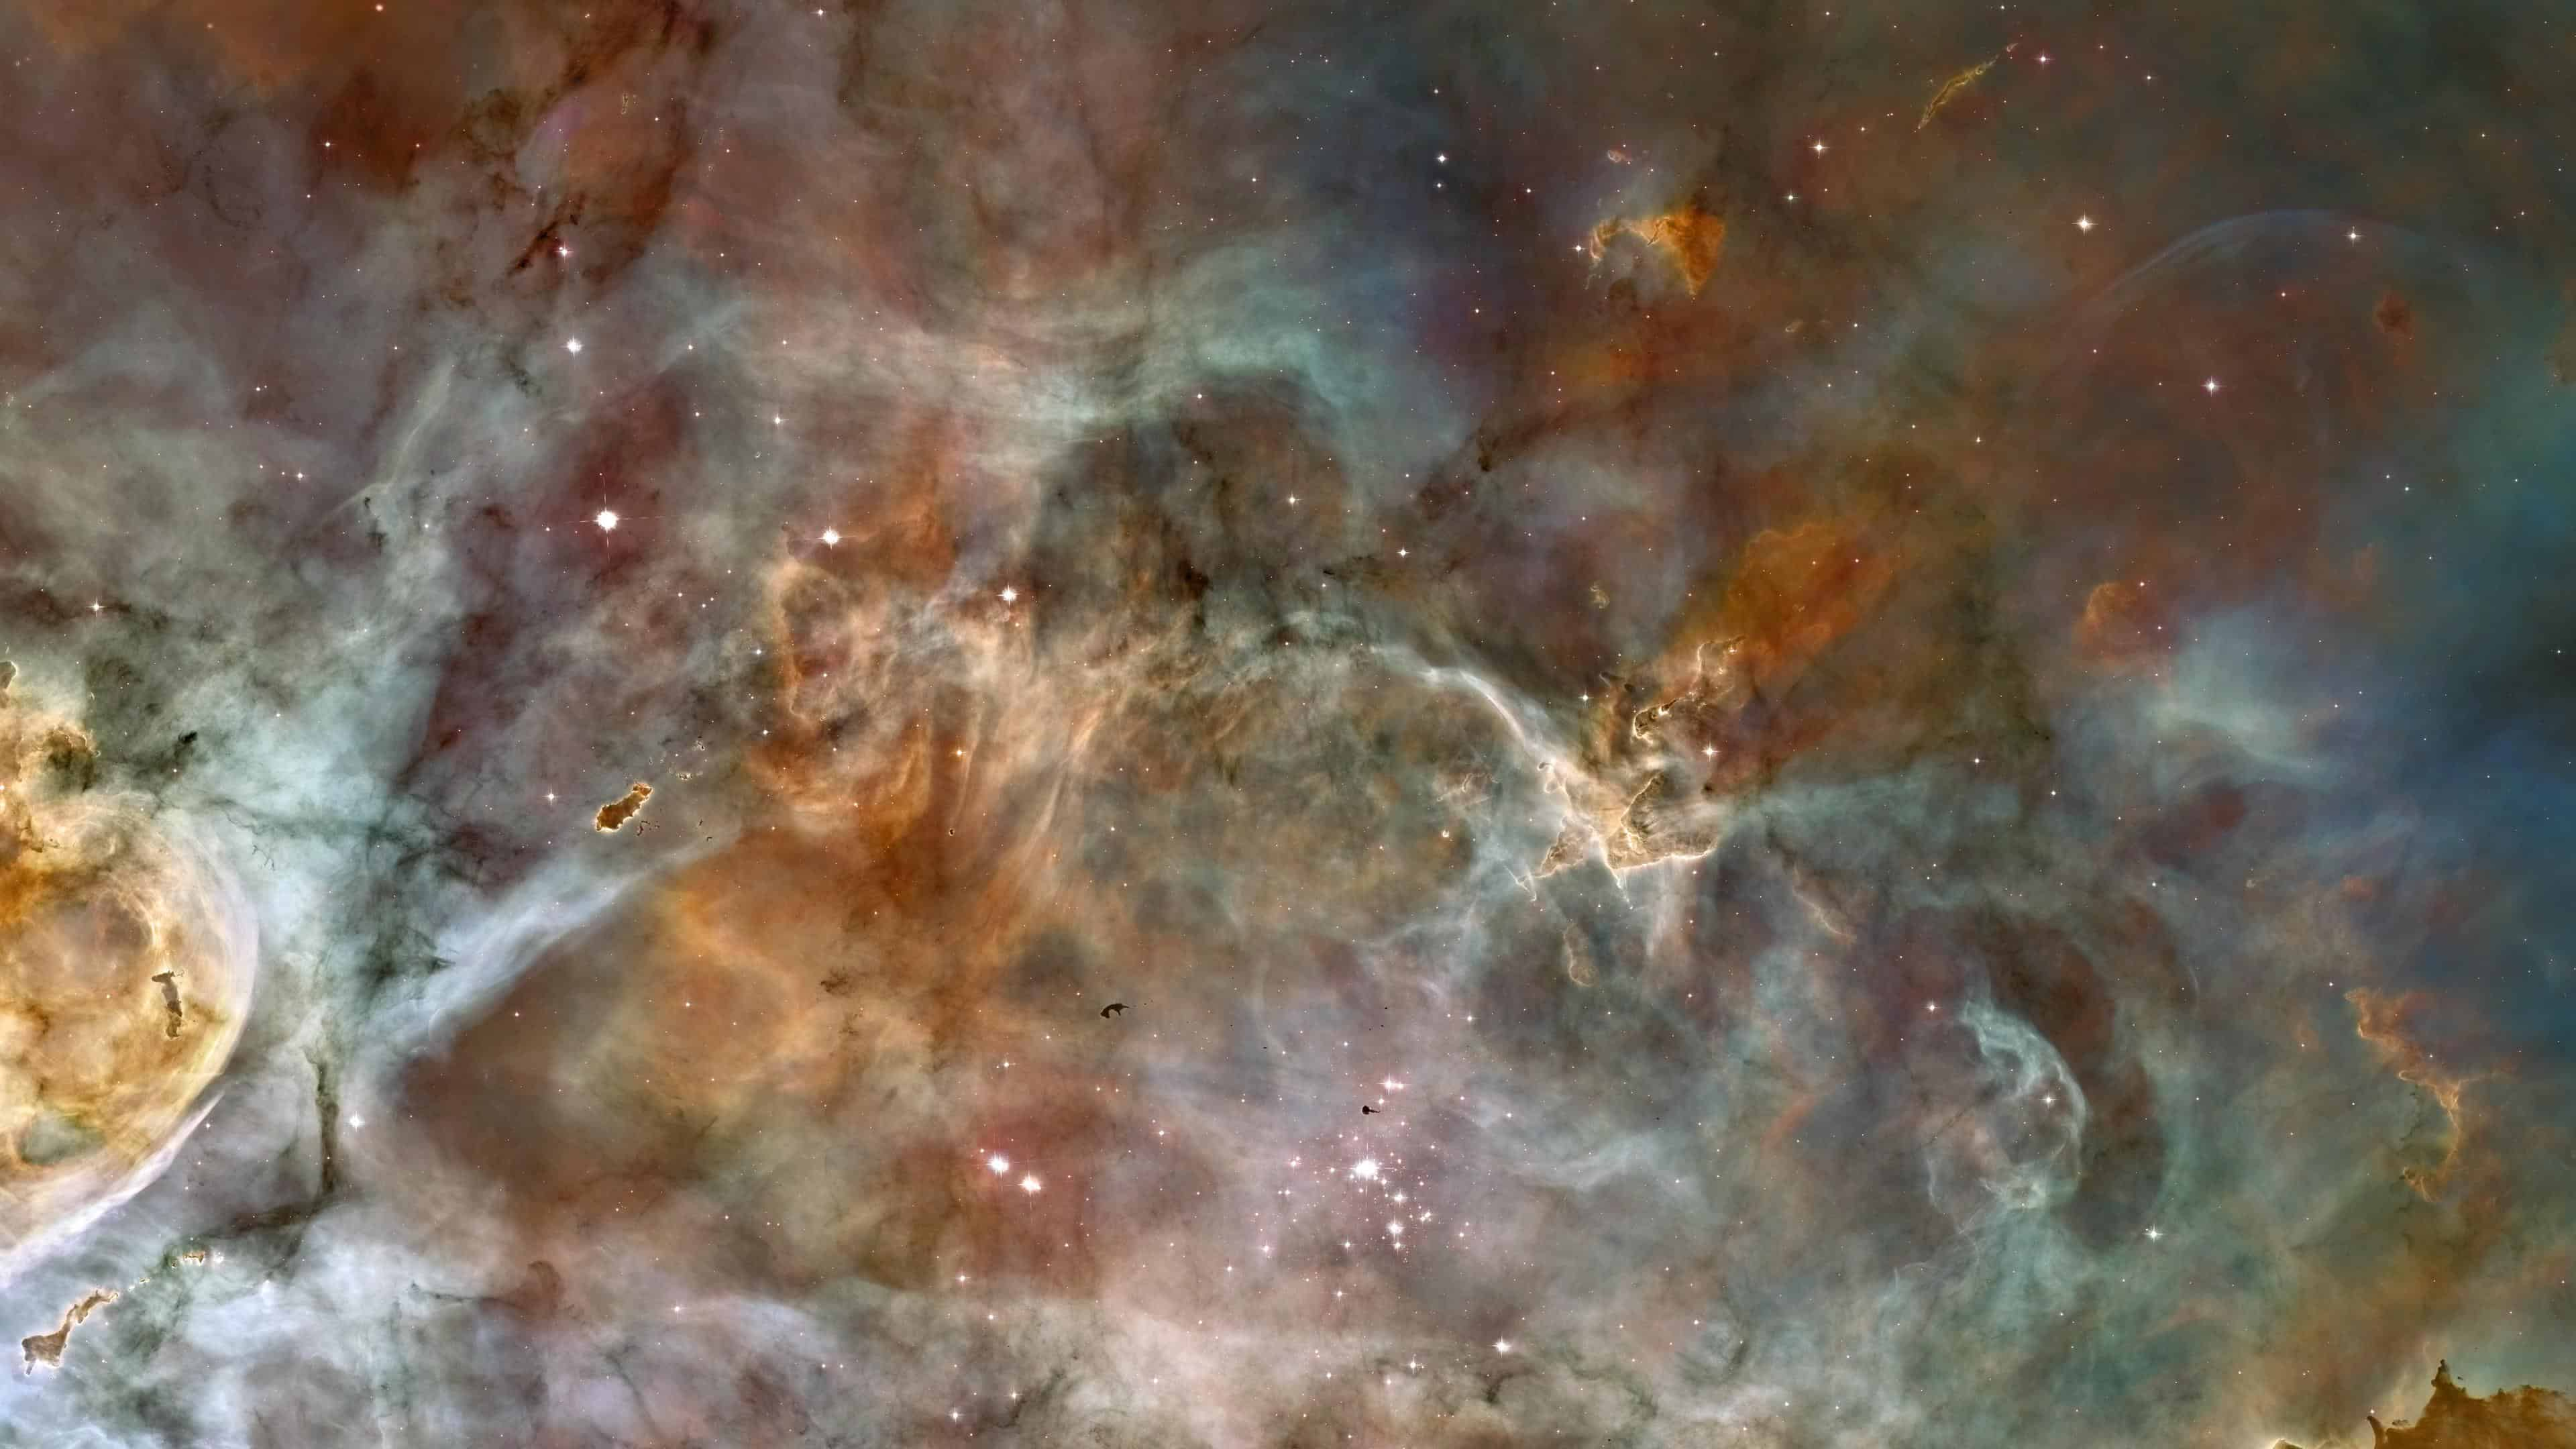 carina nebula mystic mountain uhd 4k wallpaper